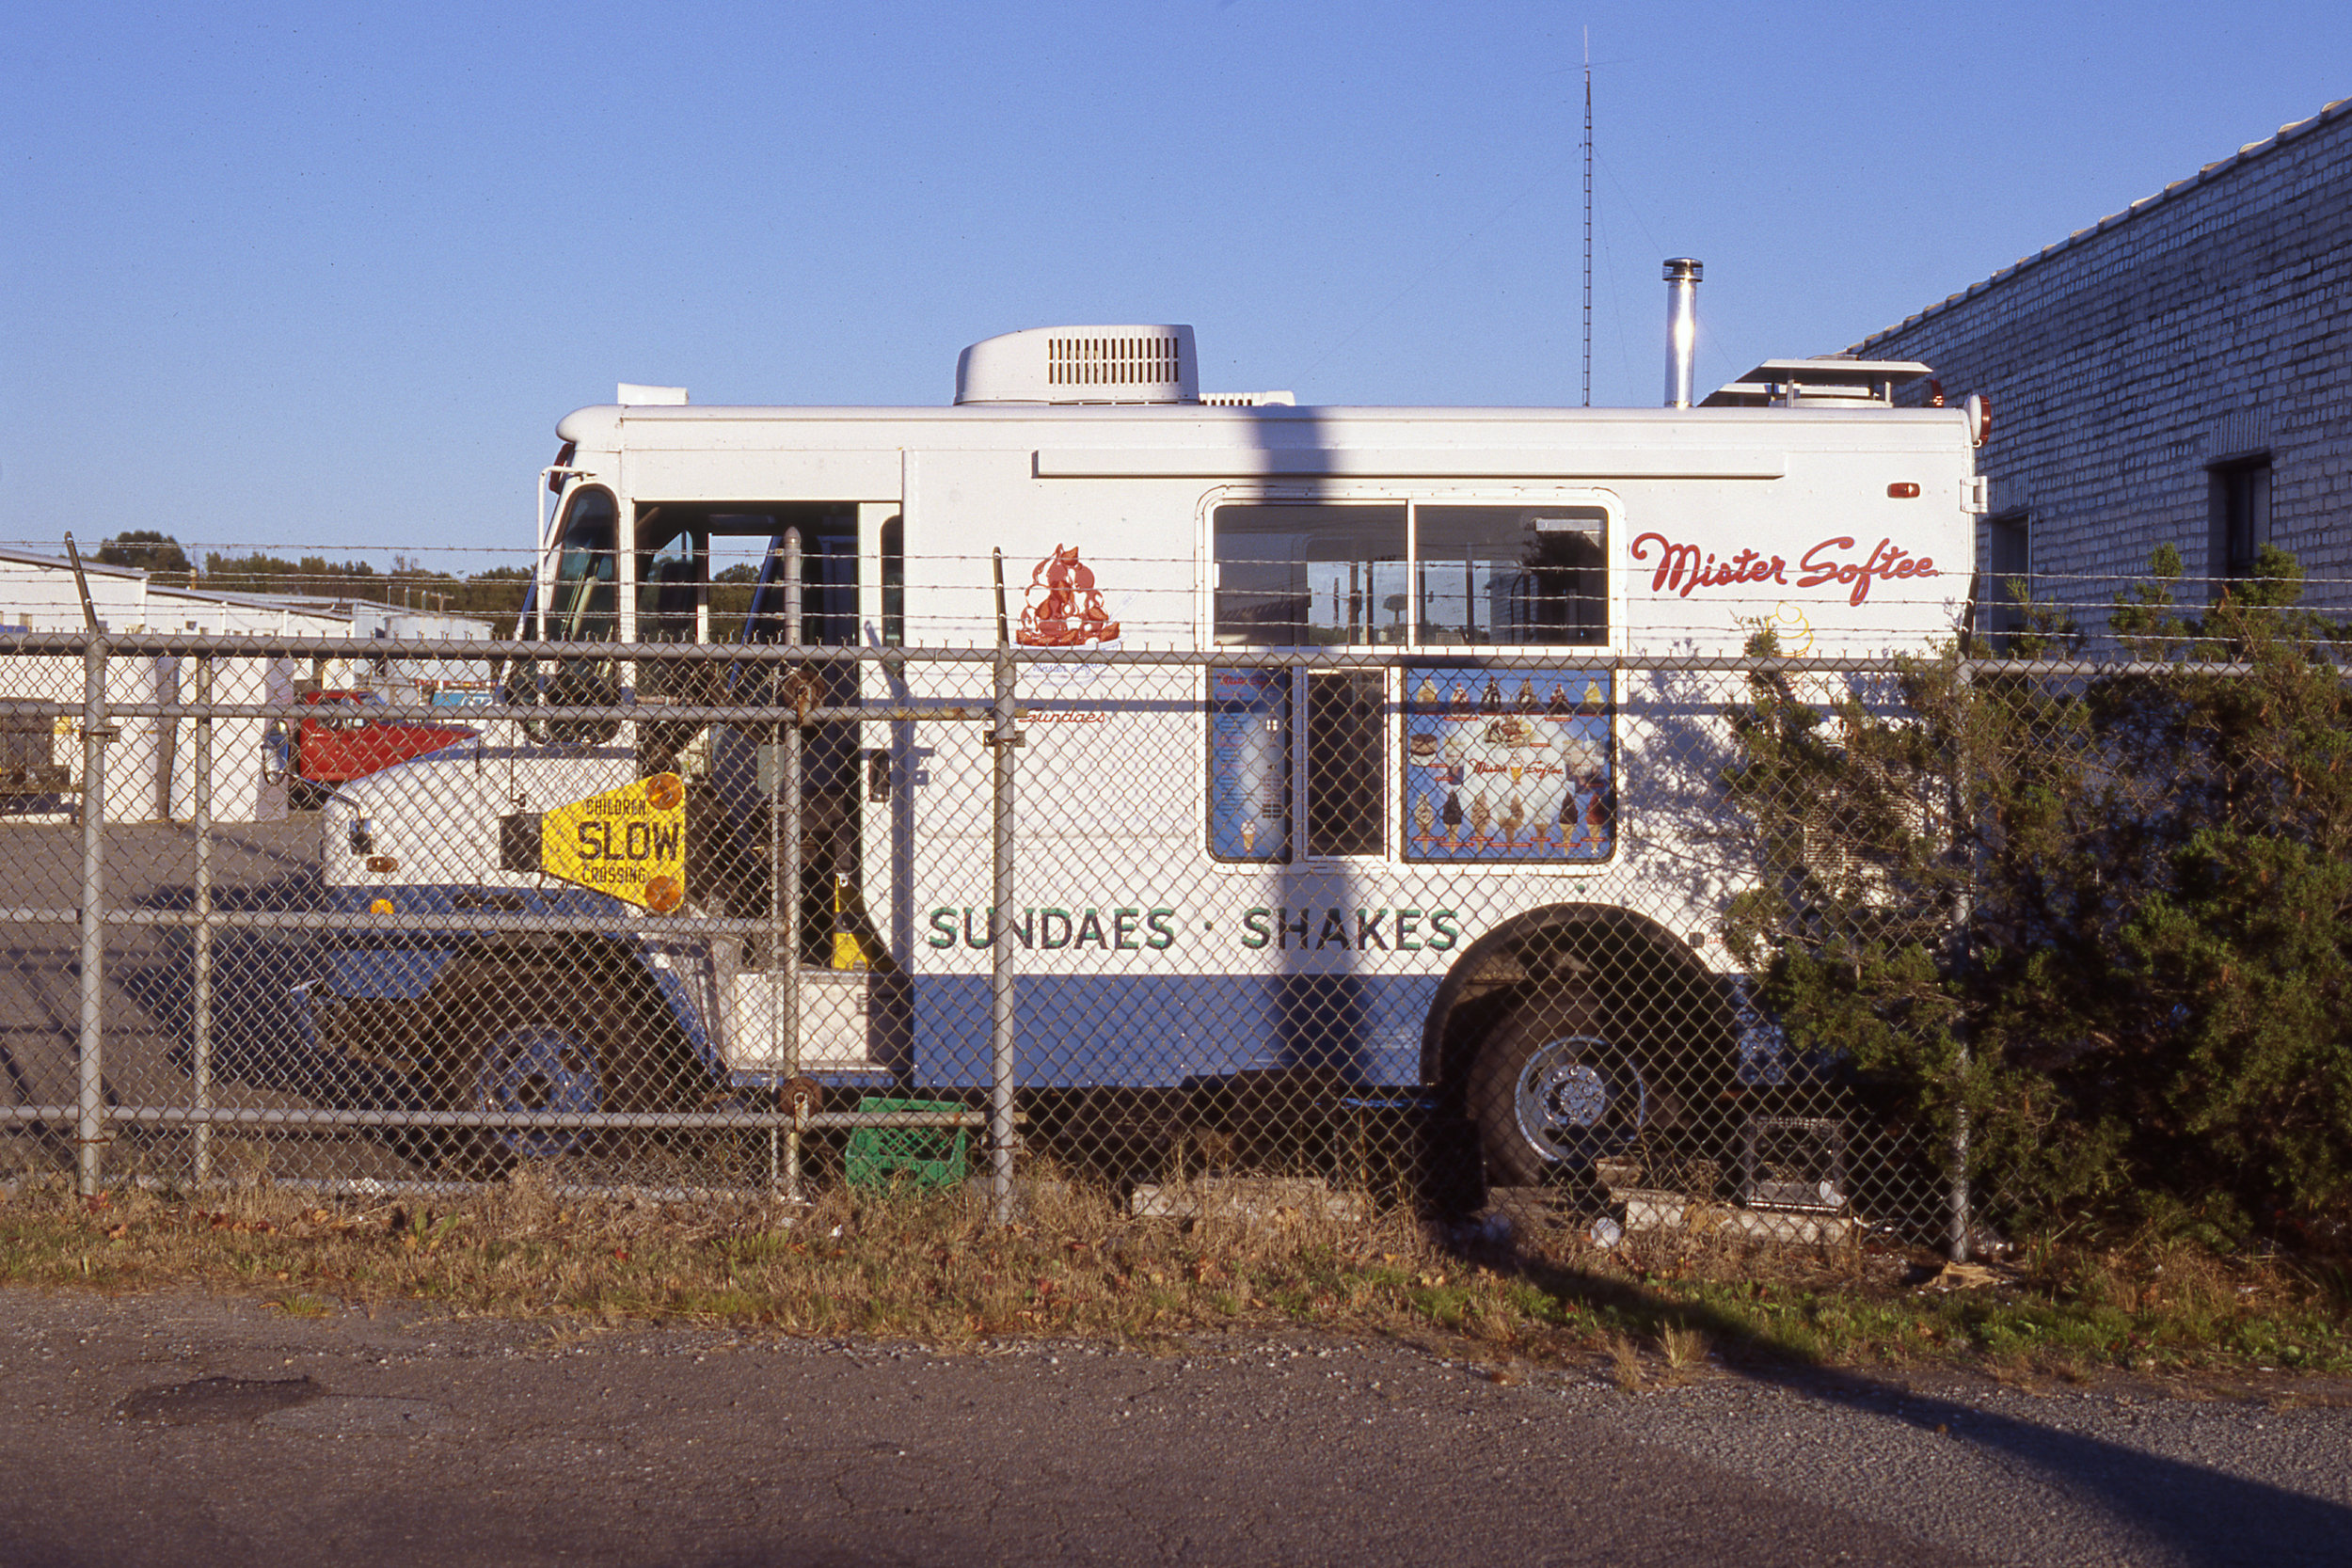 A well-protected Mister Softee truck photographed during the golden hour on Kodak's new Ektachrome E100 slide film.